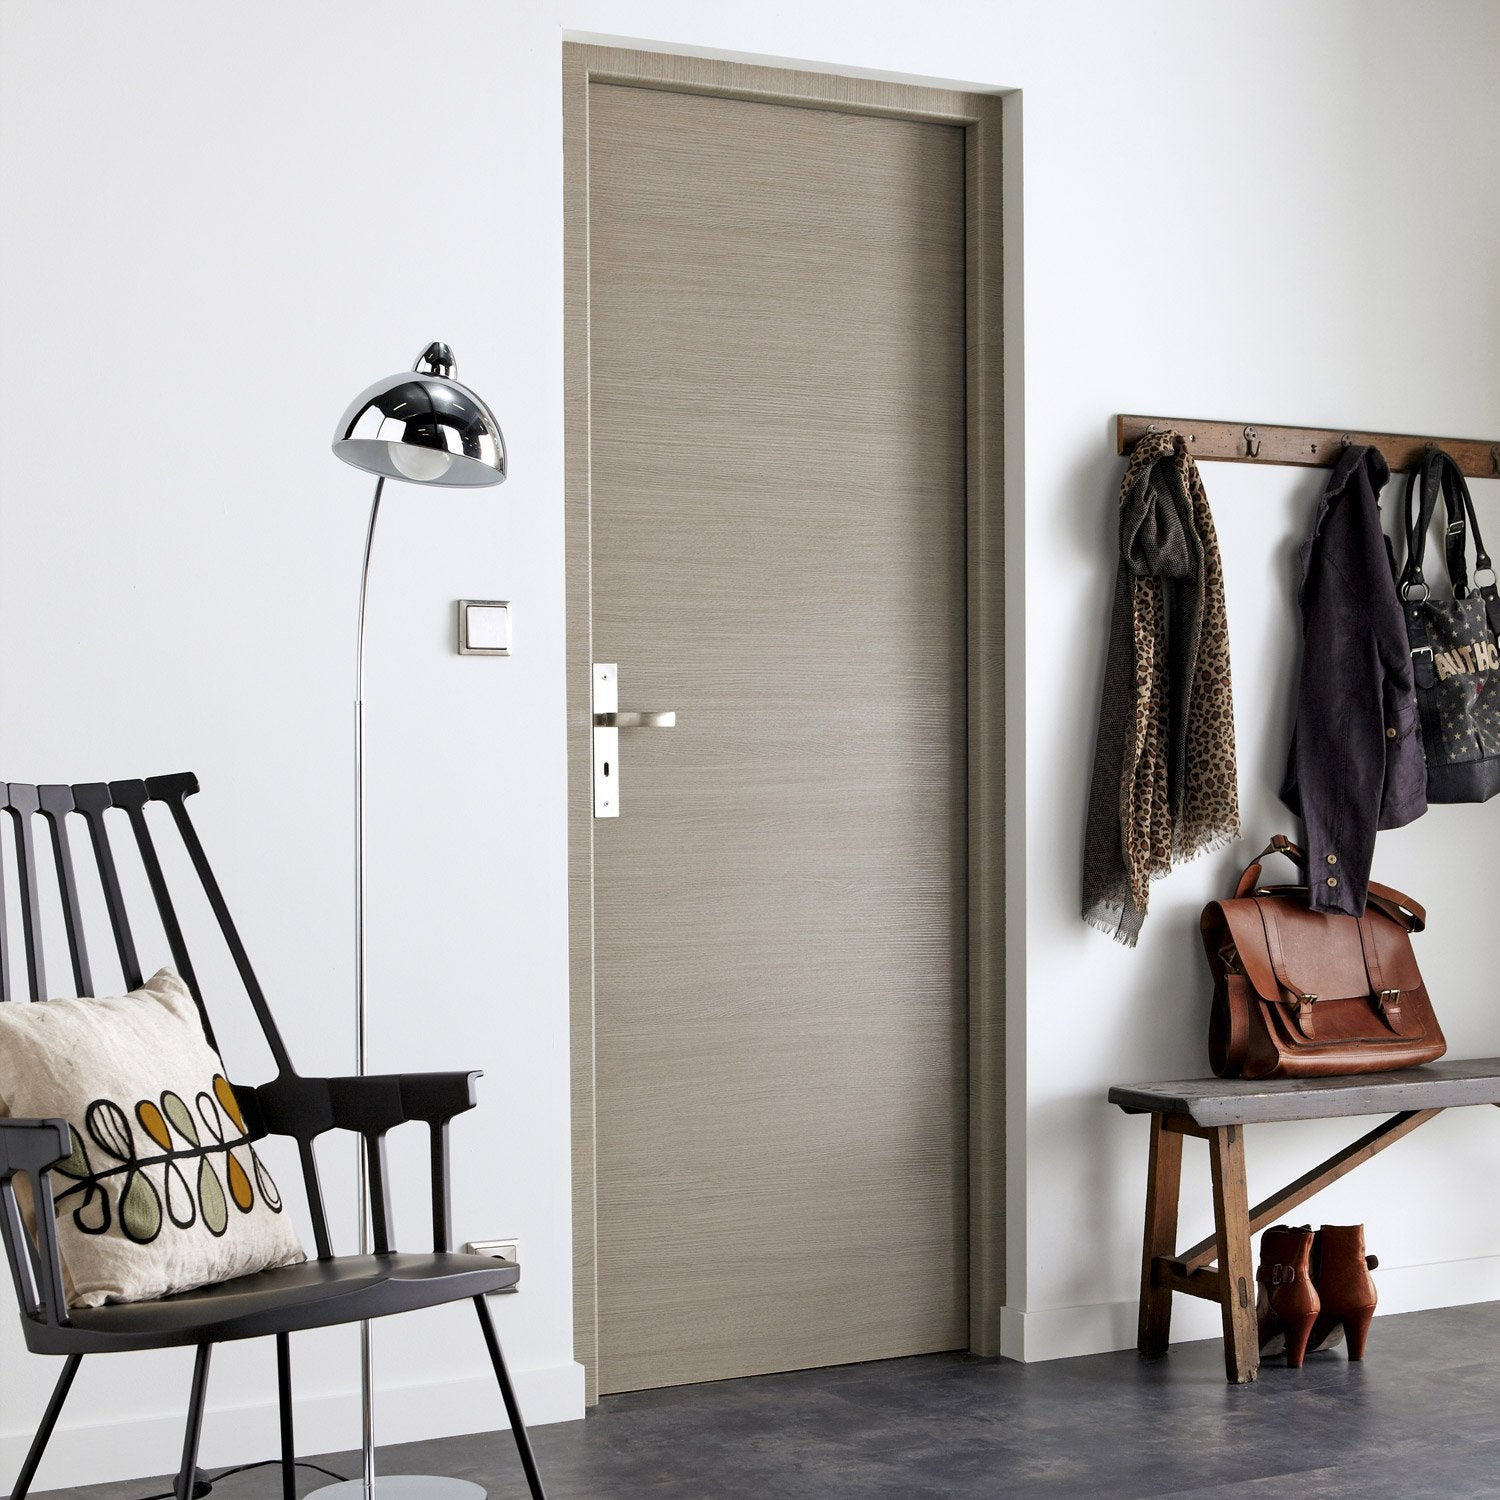 Porte sans b ti mdf rev tu d cor ch ne fum gris londres for Decoration porte interieur leroy merlin